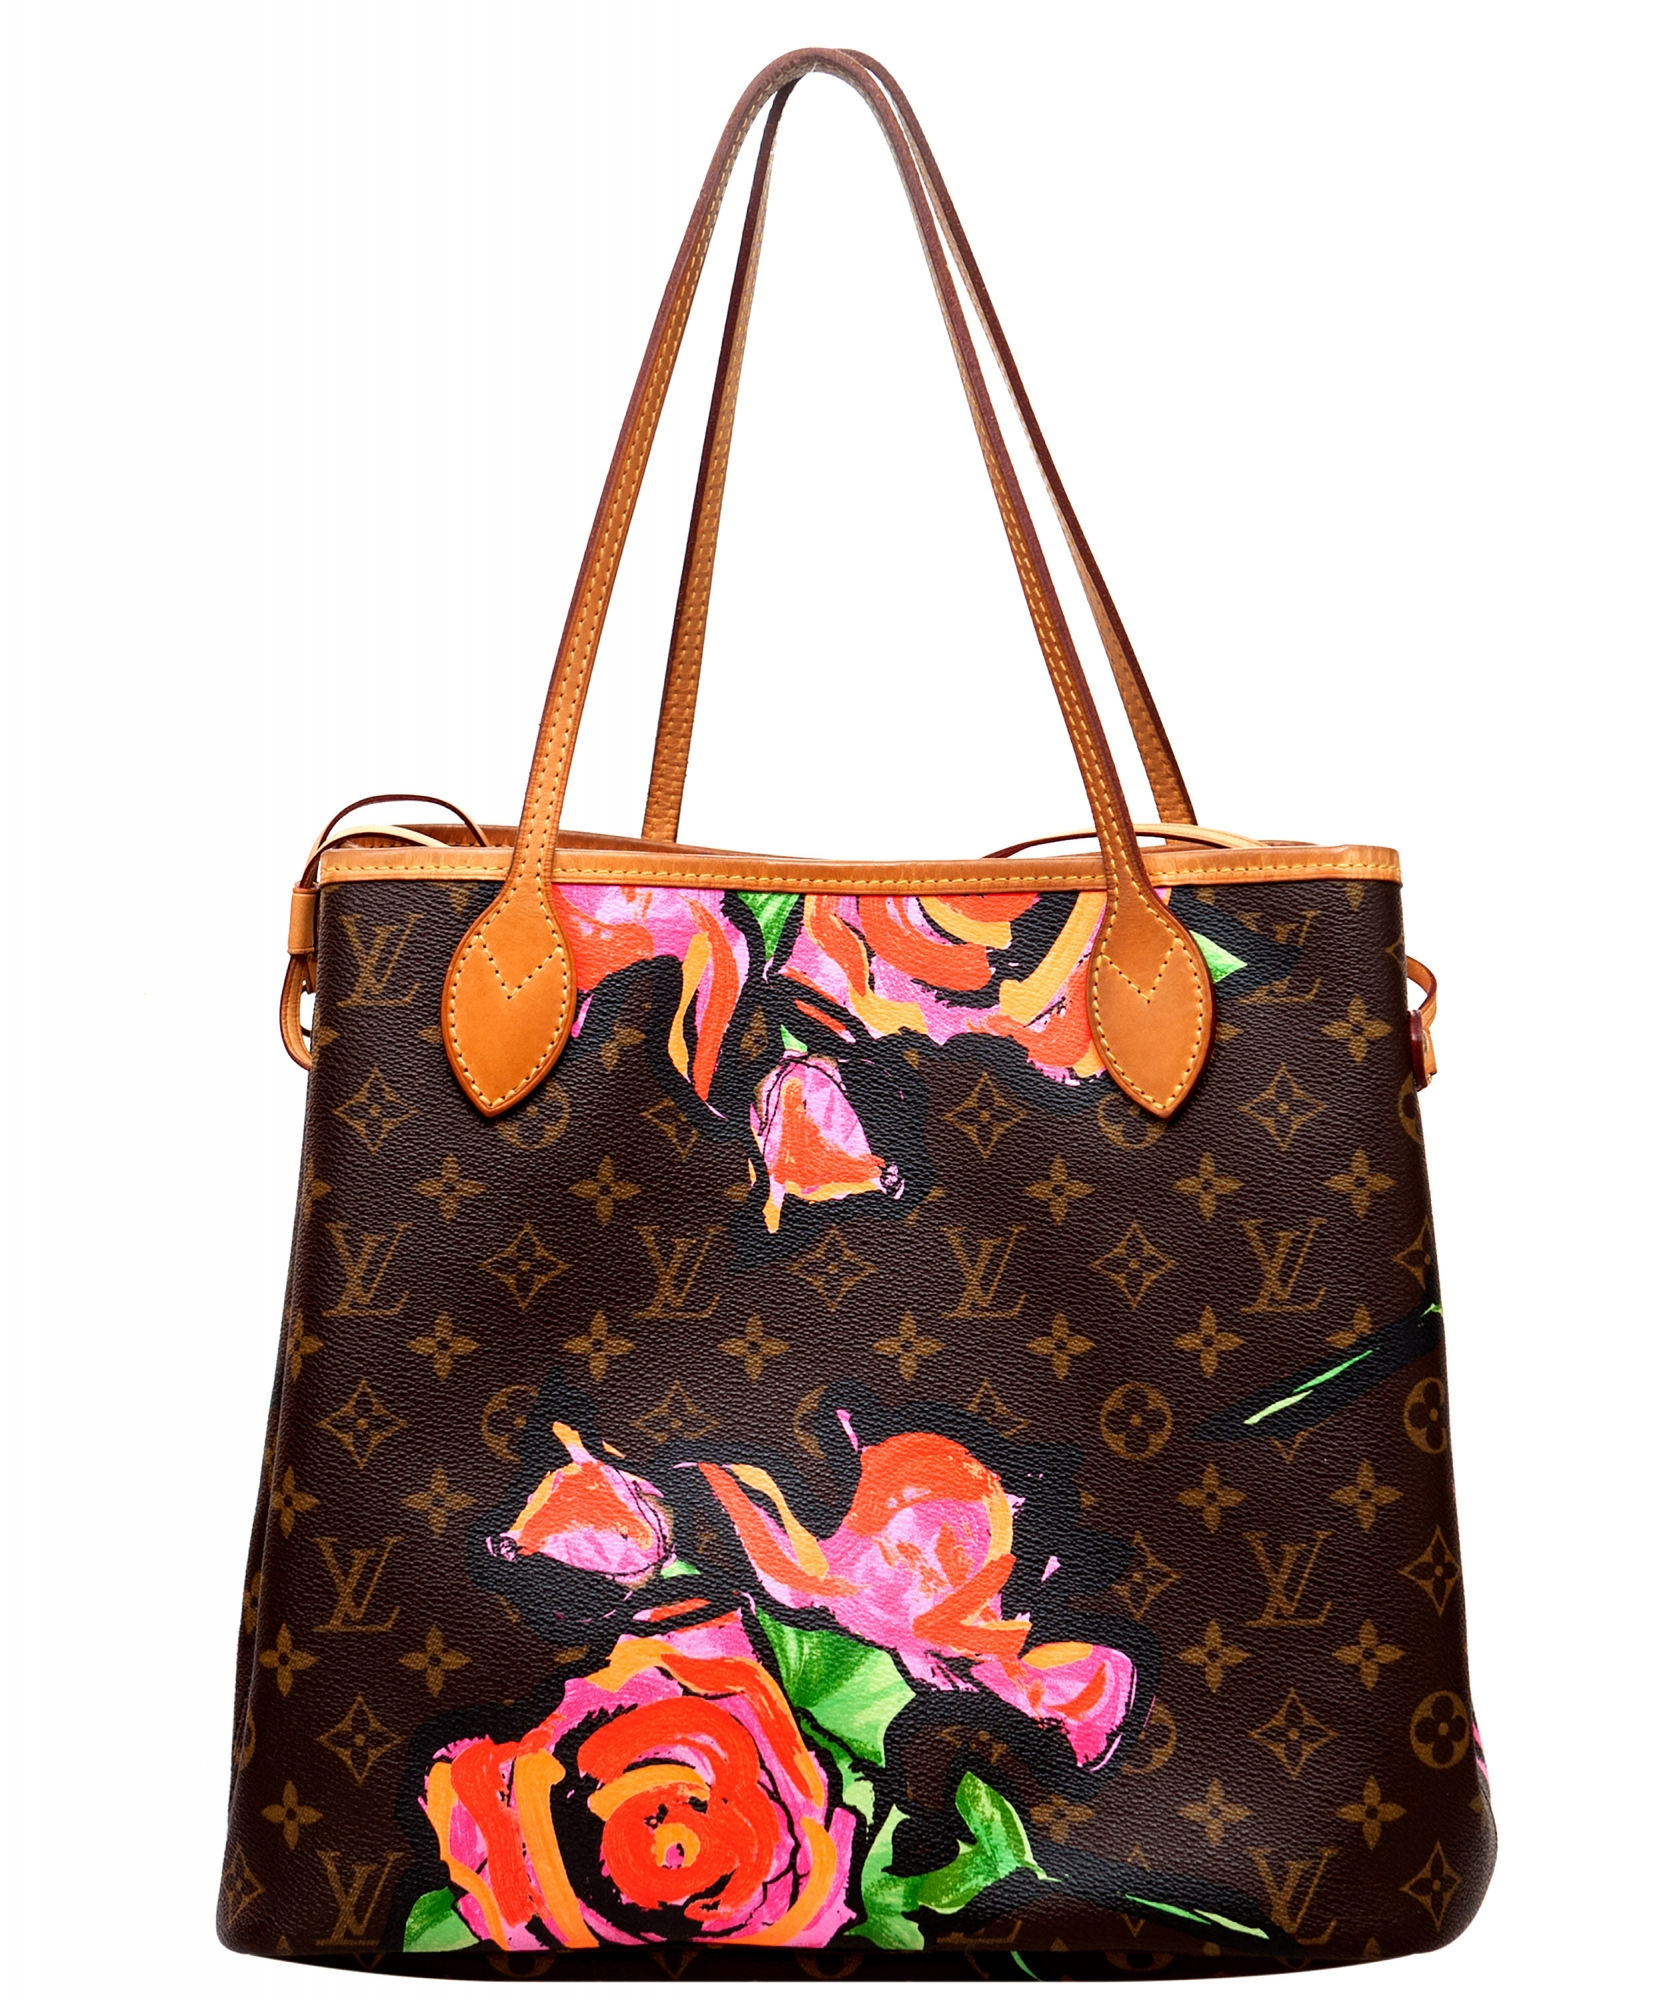 b8b54f034b3e ... Louis Vuitton Monogram Graffiti Roses Neverfull MM Bag - Limited  Edition. Touch to zoom